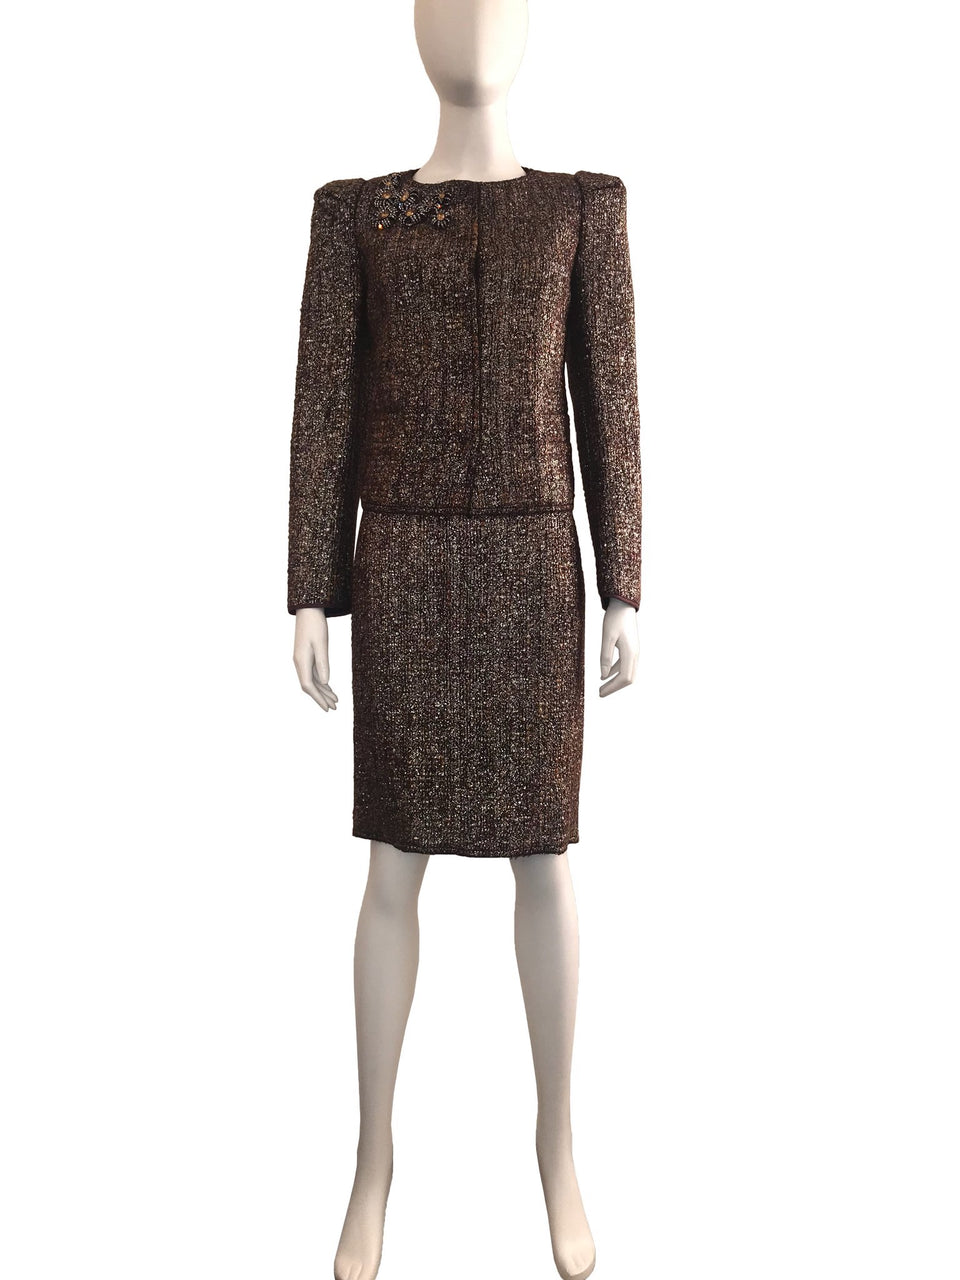 2-Piece Wool Skirt Suit with Embellishments on Front